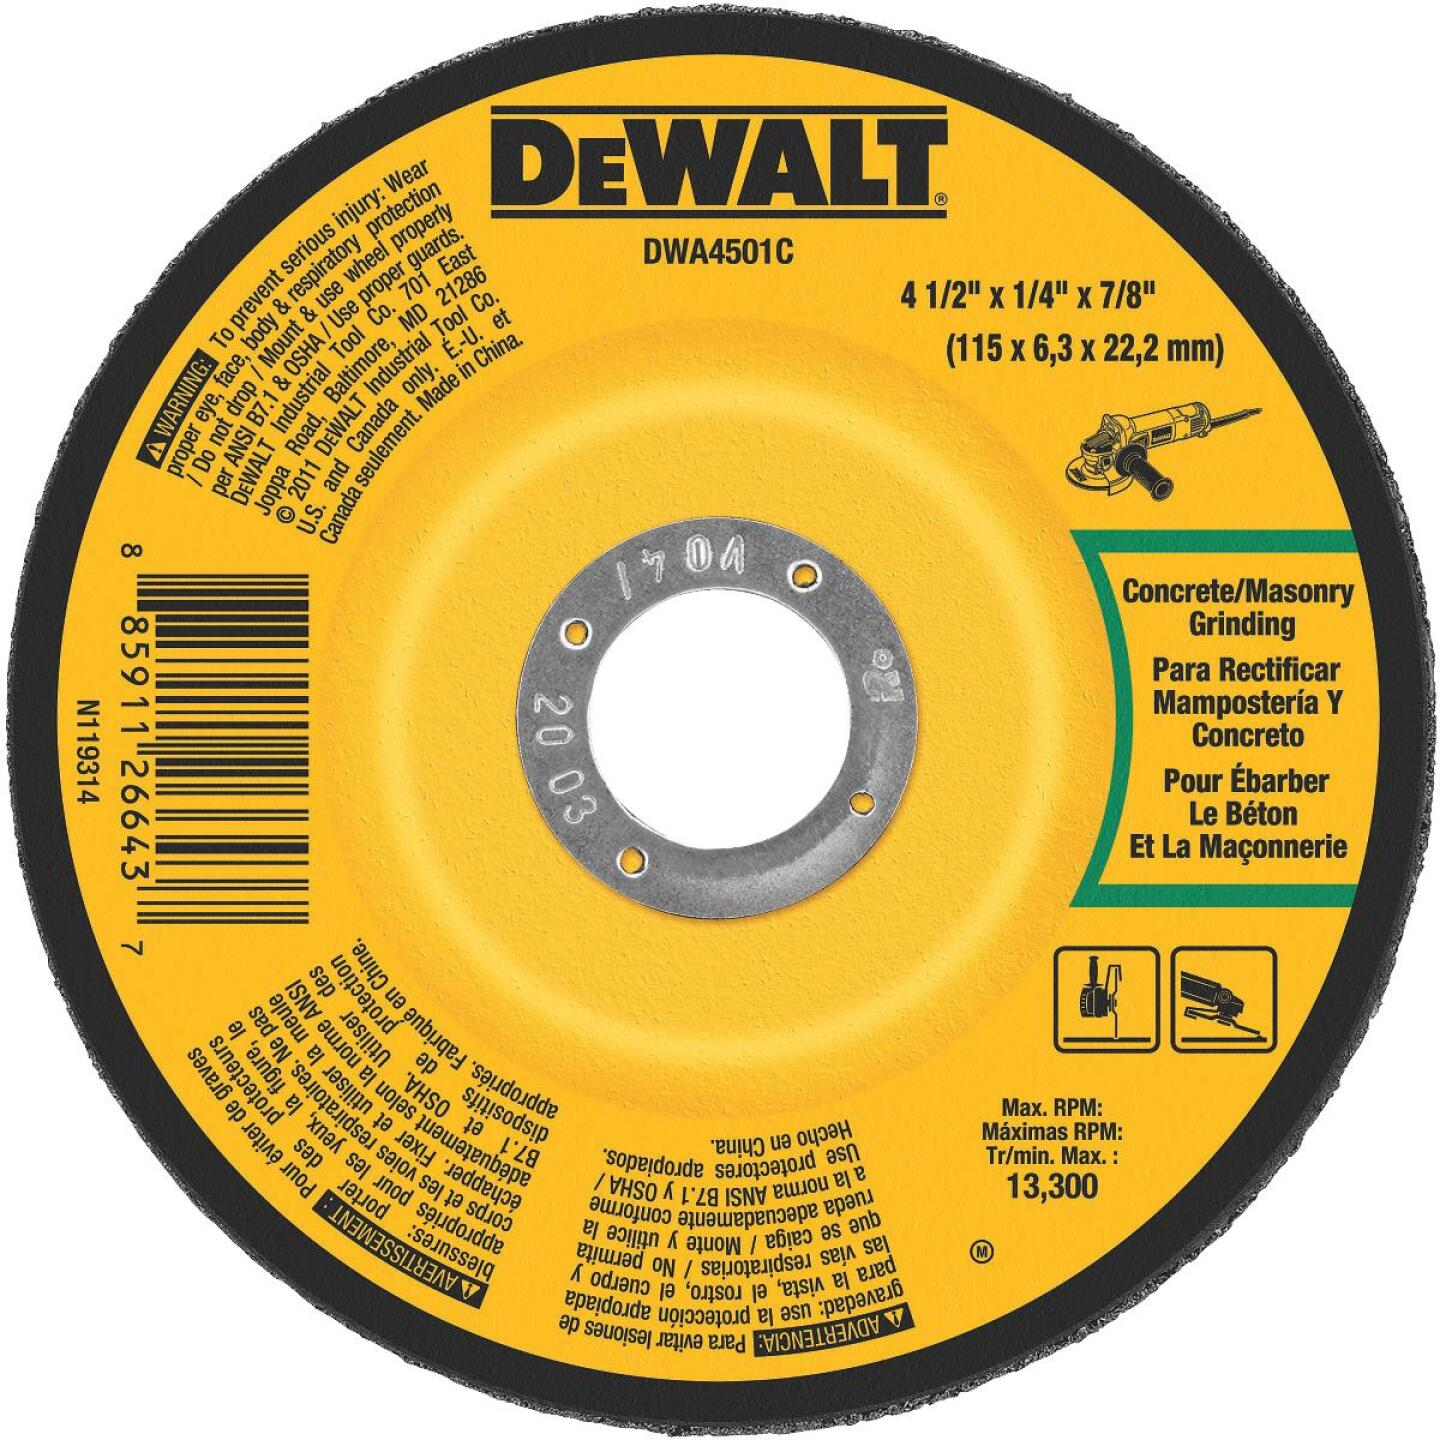 DeWalt HP Type 27 4-1/2 In. x 1/4 In. x 7/8 In. Masonry Cut-Off Wheel Image 1